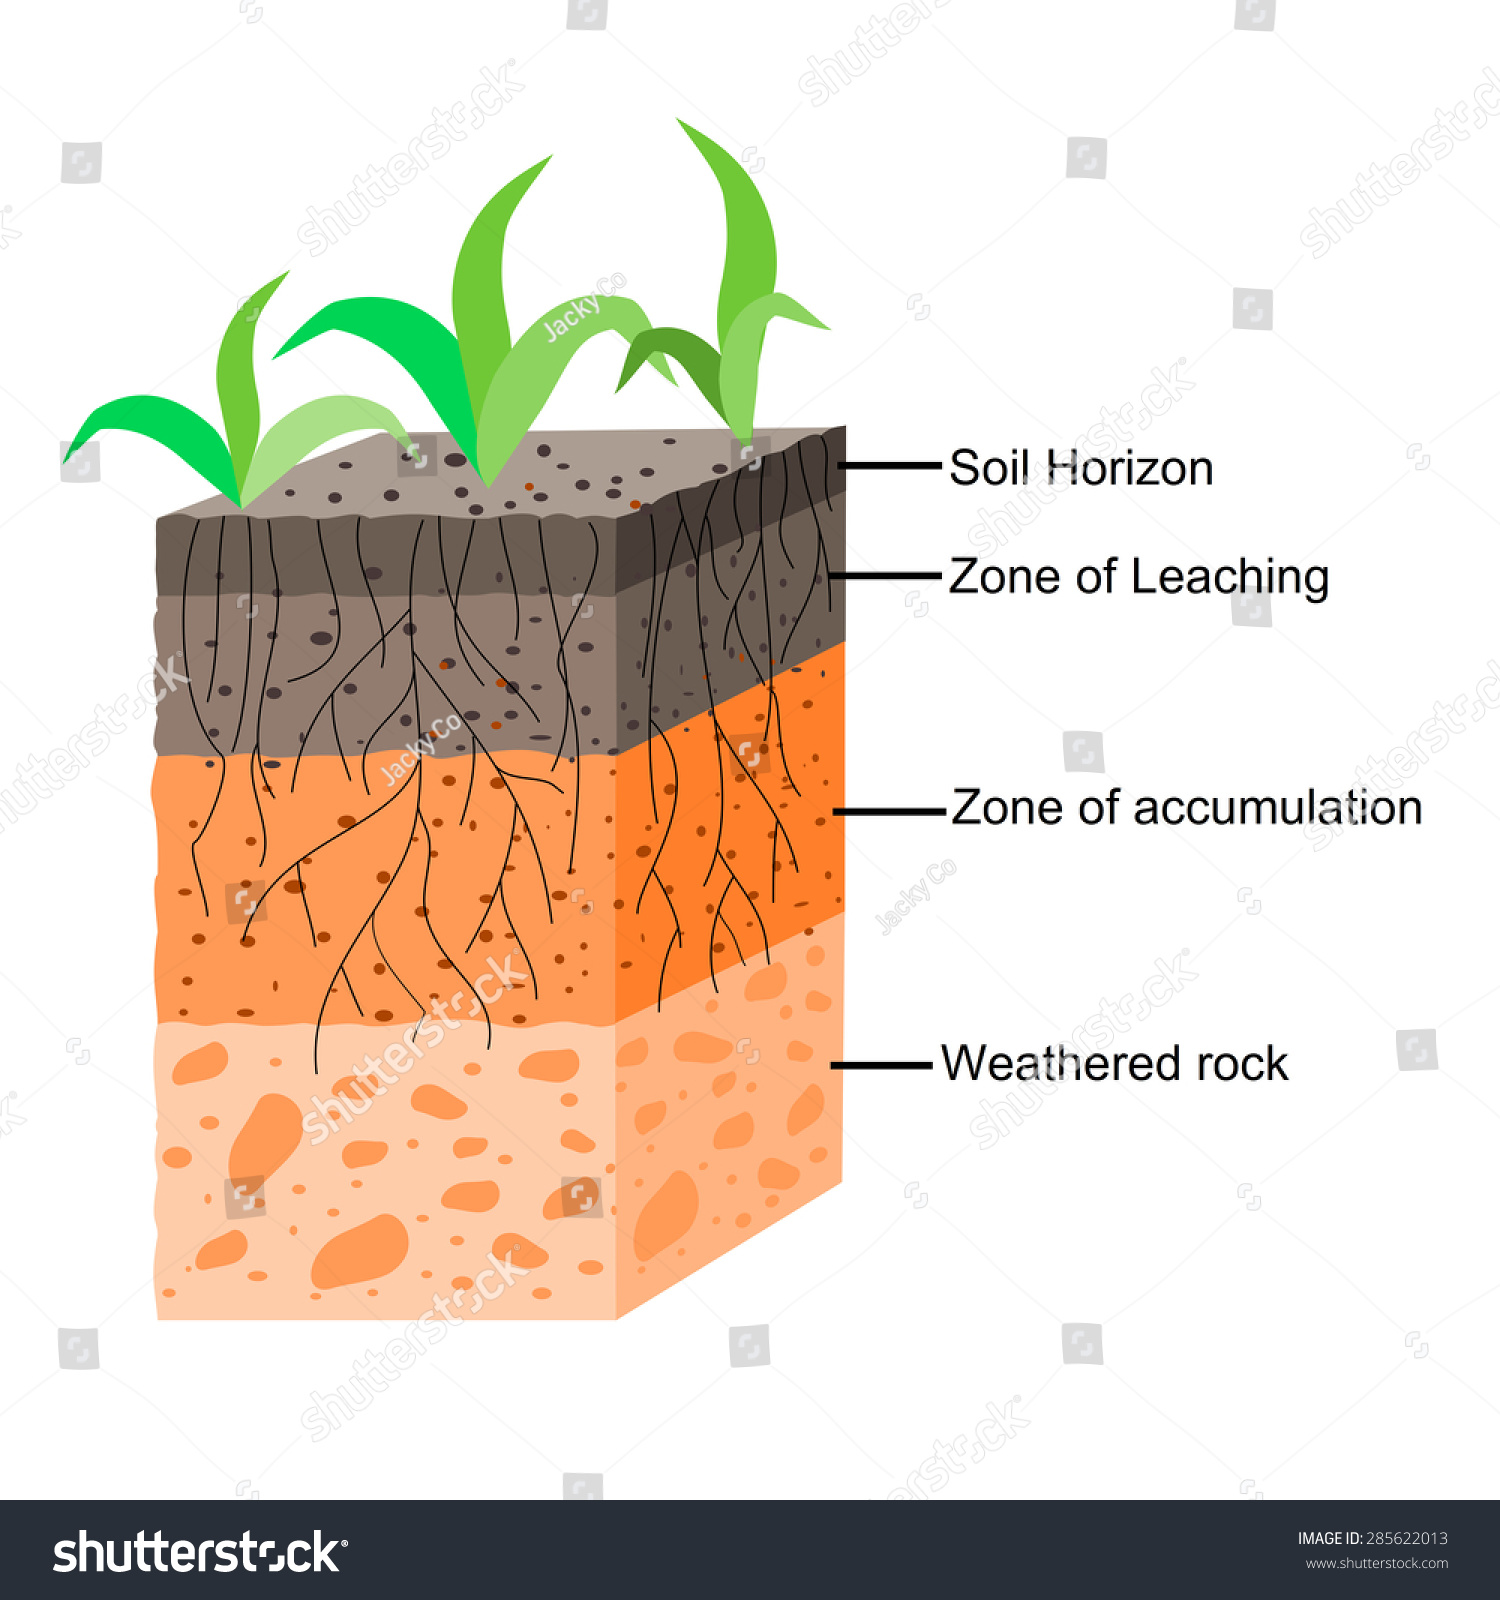 Royalty free soil formation and soil horizons 285622013 stock soil formation and soil horizons 285622013 pooptronica Images